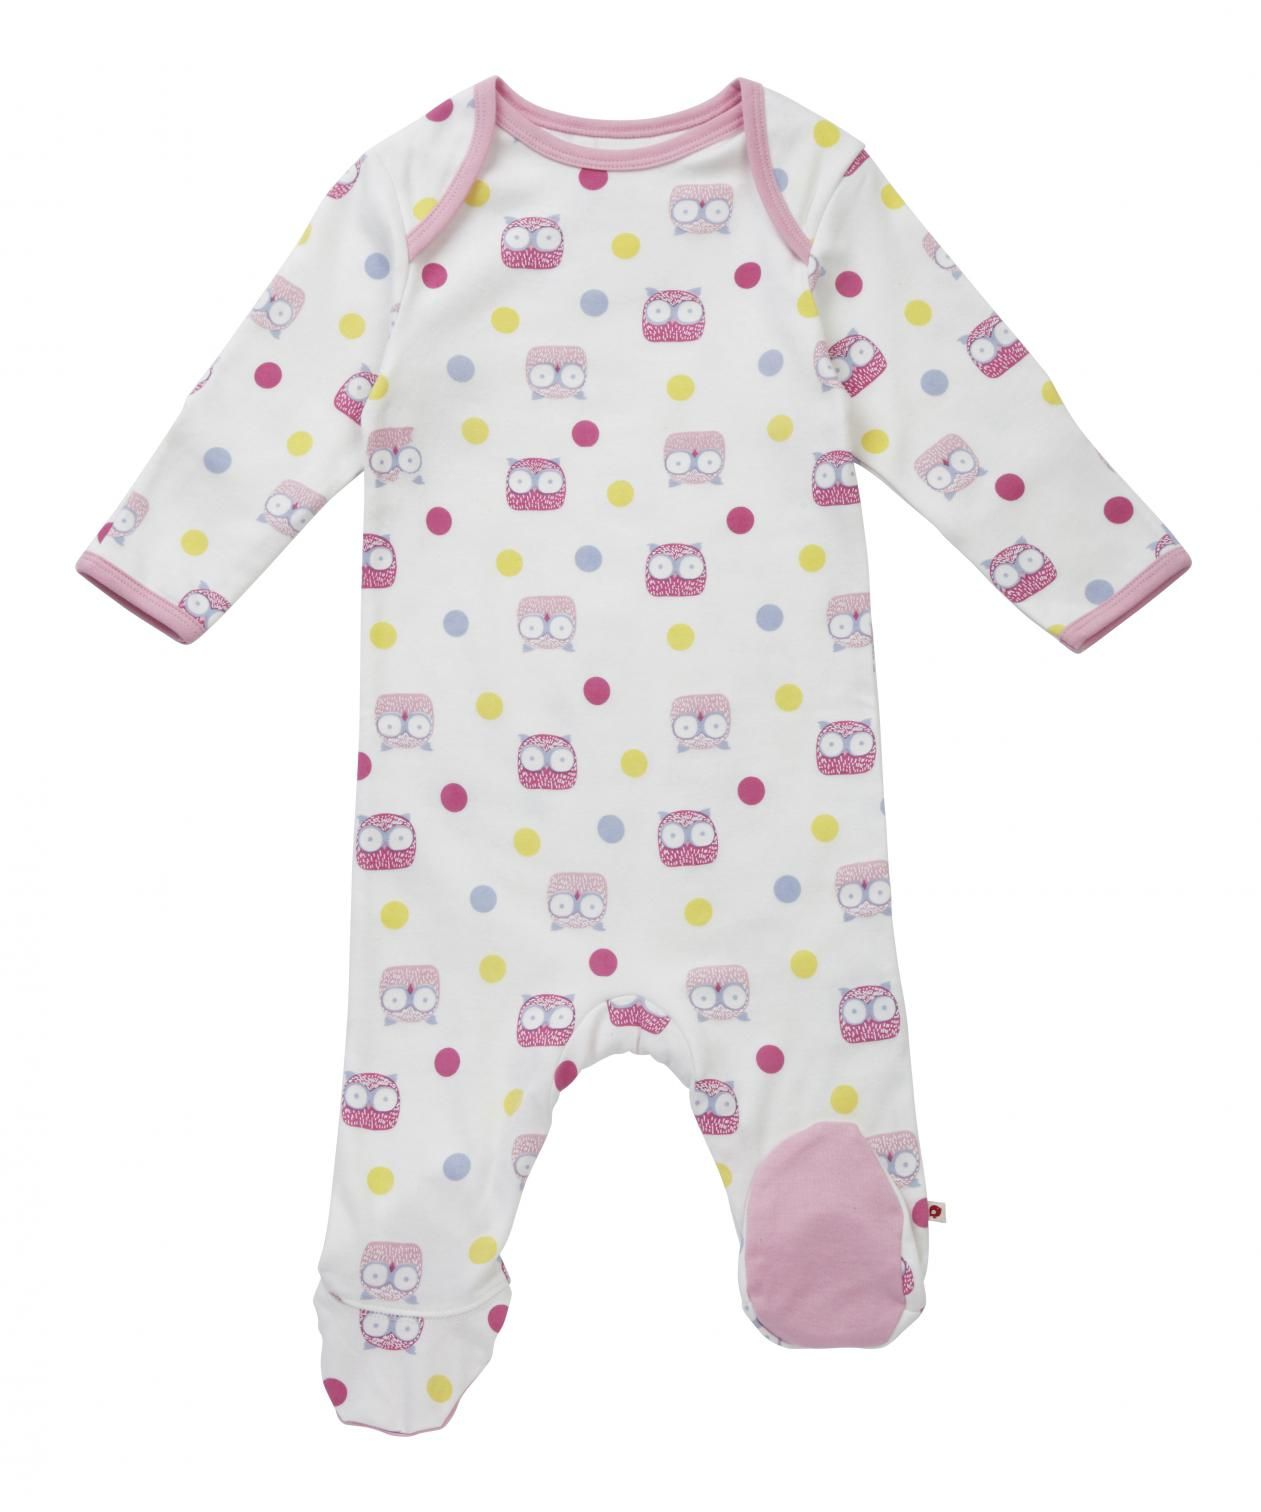 d8f65749f An adorable soft sleepsuit